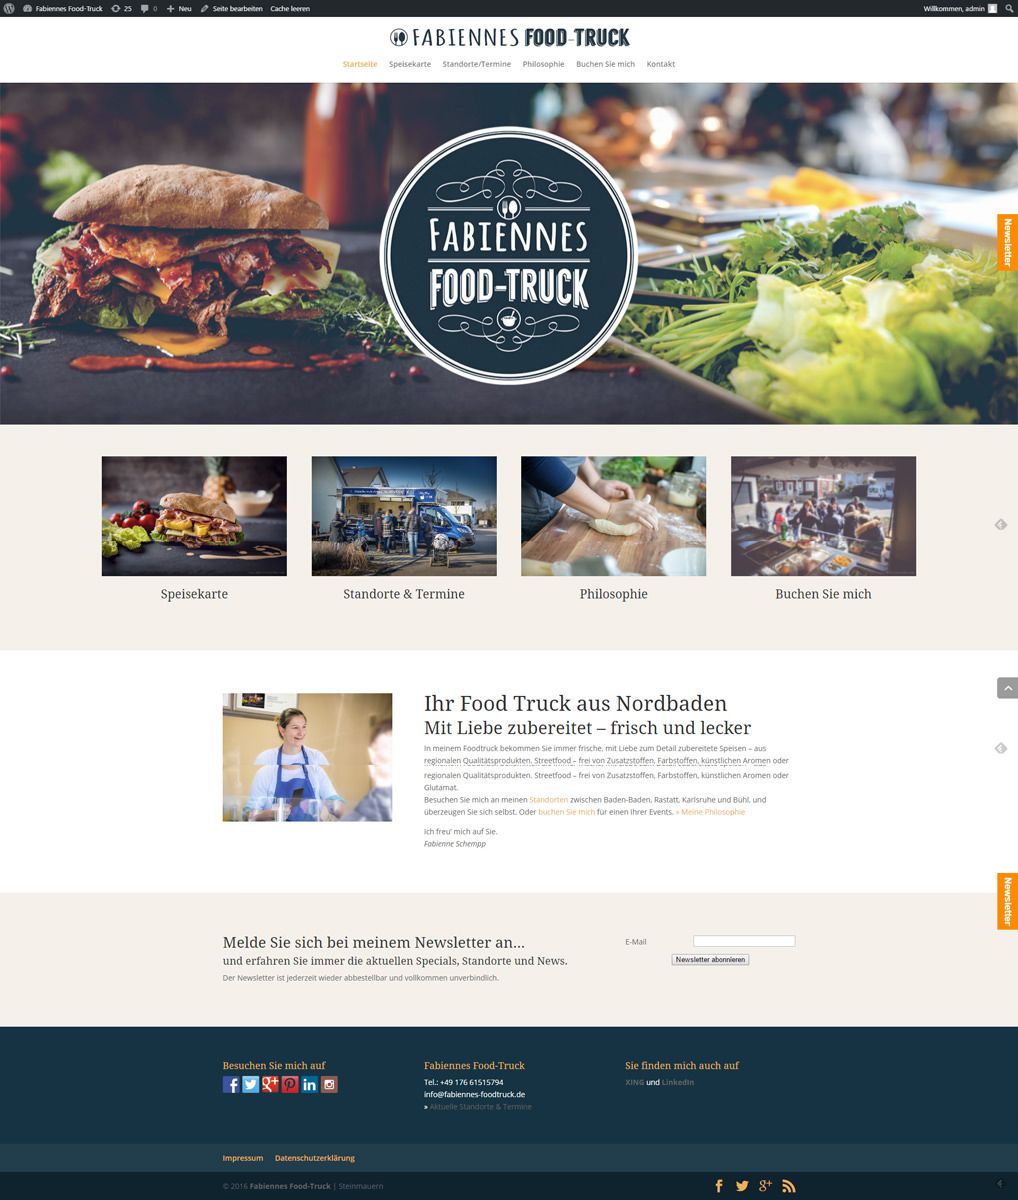 screencapture-fabiennes-foodtruck-de-1480288926937 Fabiennes Foodtruck - Webdesign